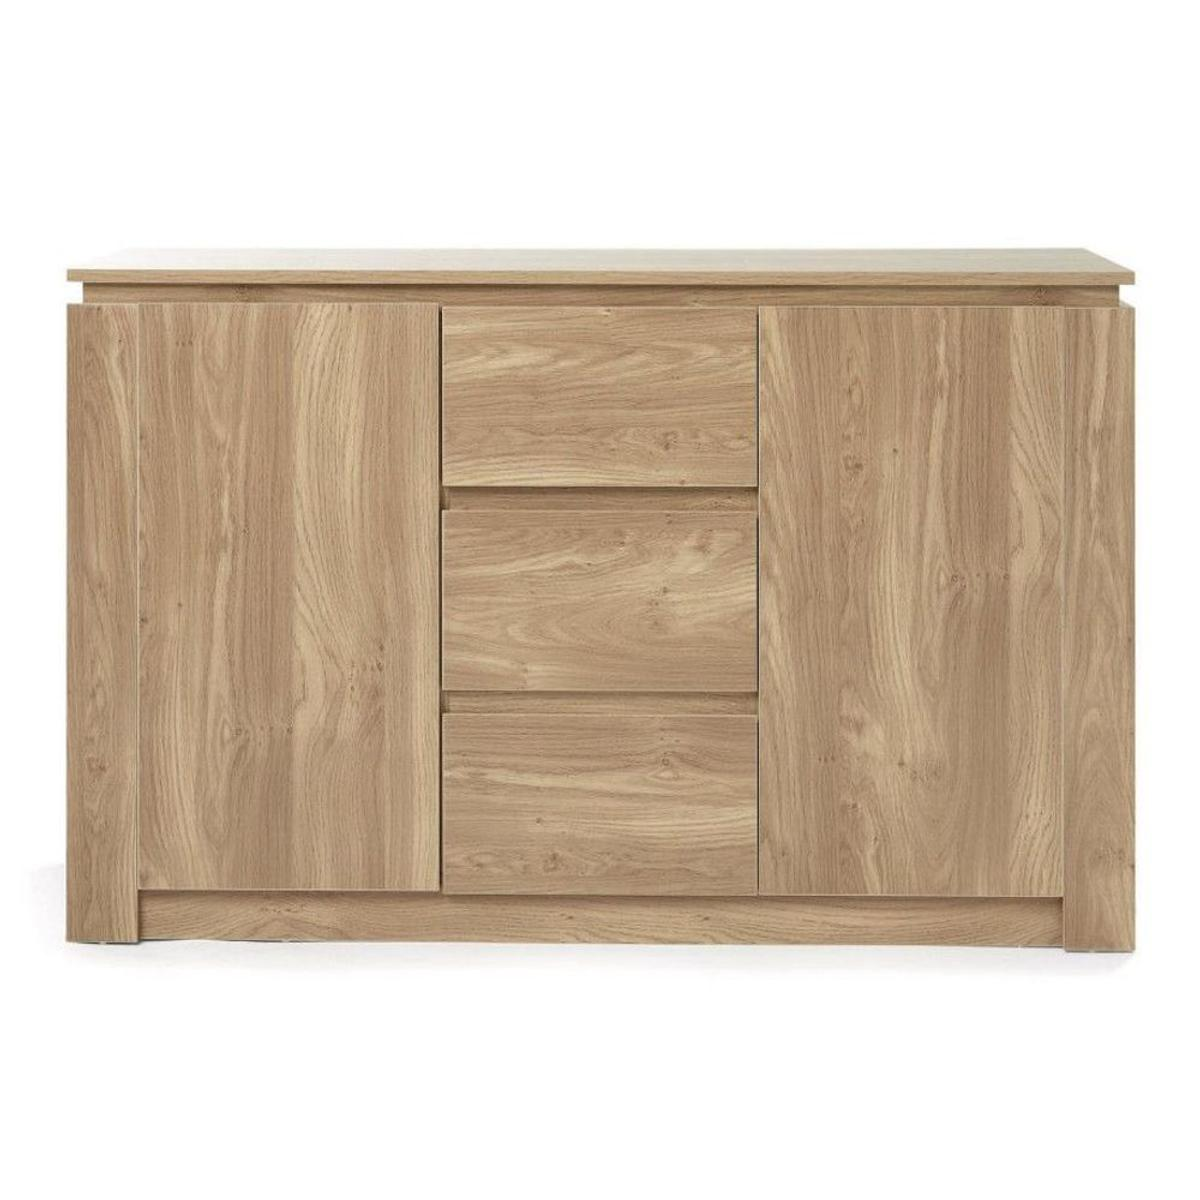 Living Room Display Cabinet Tv Unit Sideboard In M350bn For